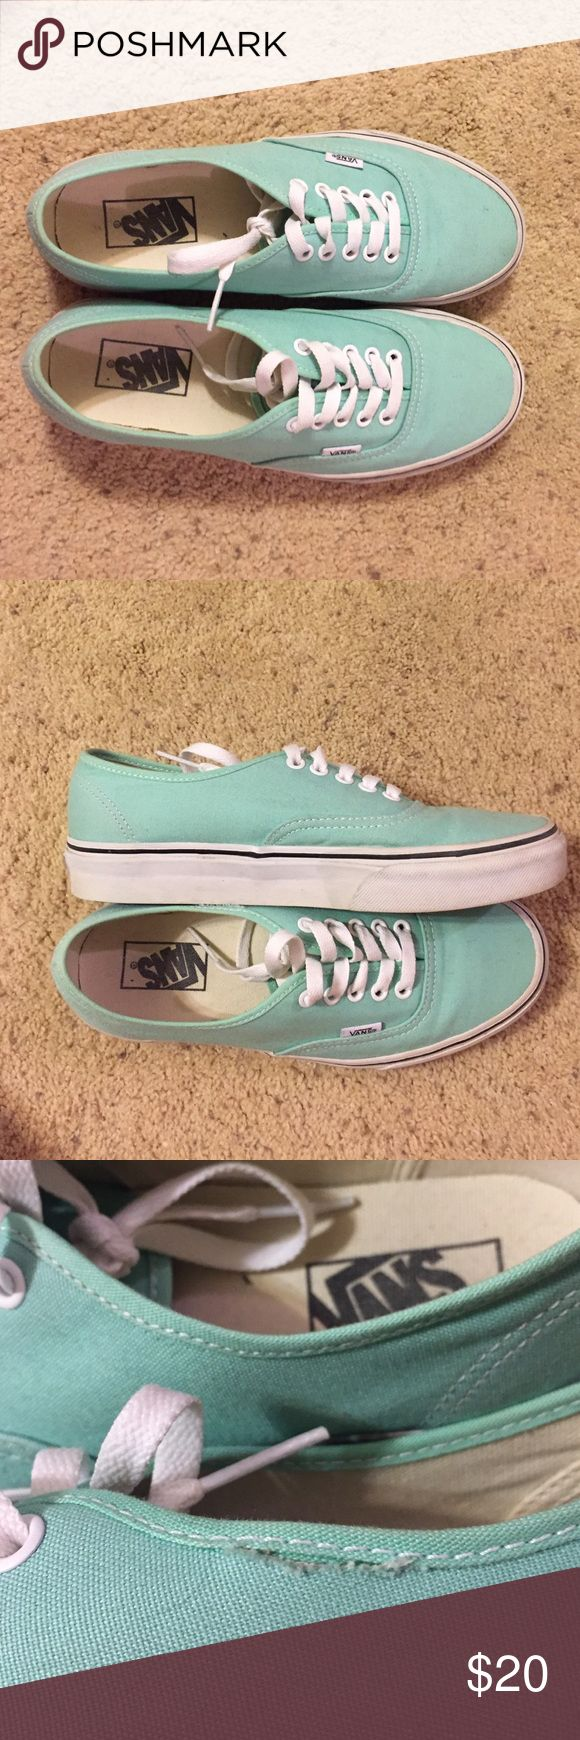 Mint green Vans Mint green Vans, worn ONCE, clean, only one small fault (which is pictured)! great condition! :) Vans Shoes Sneakers